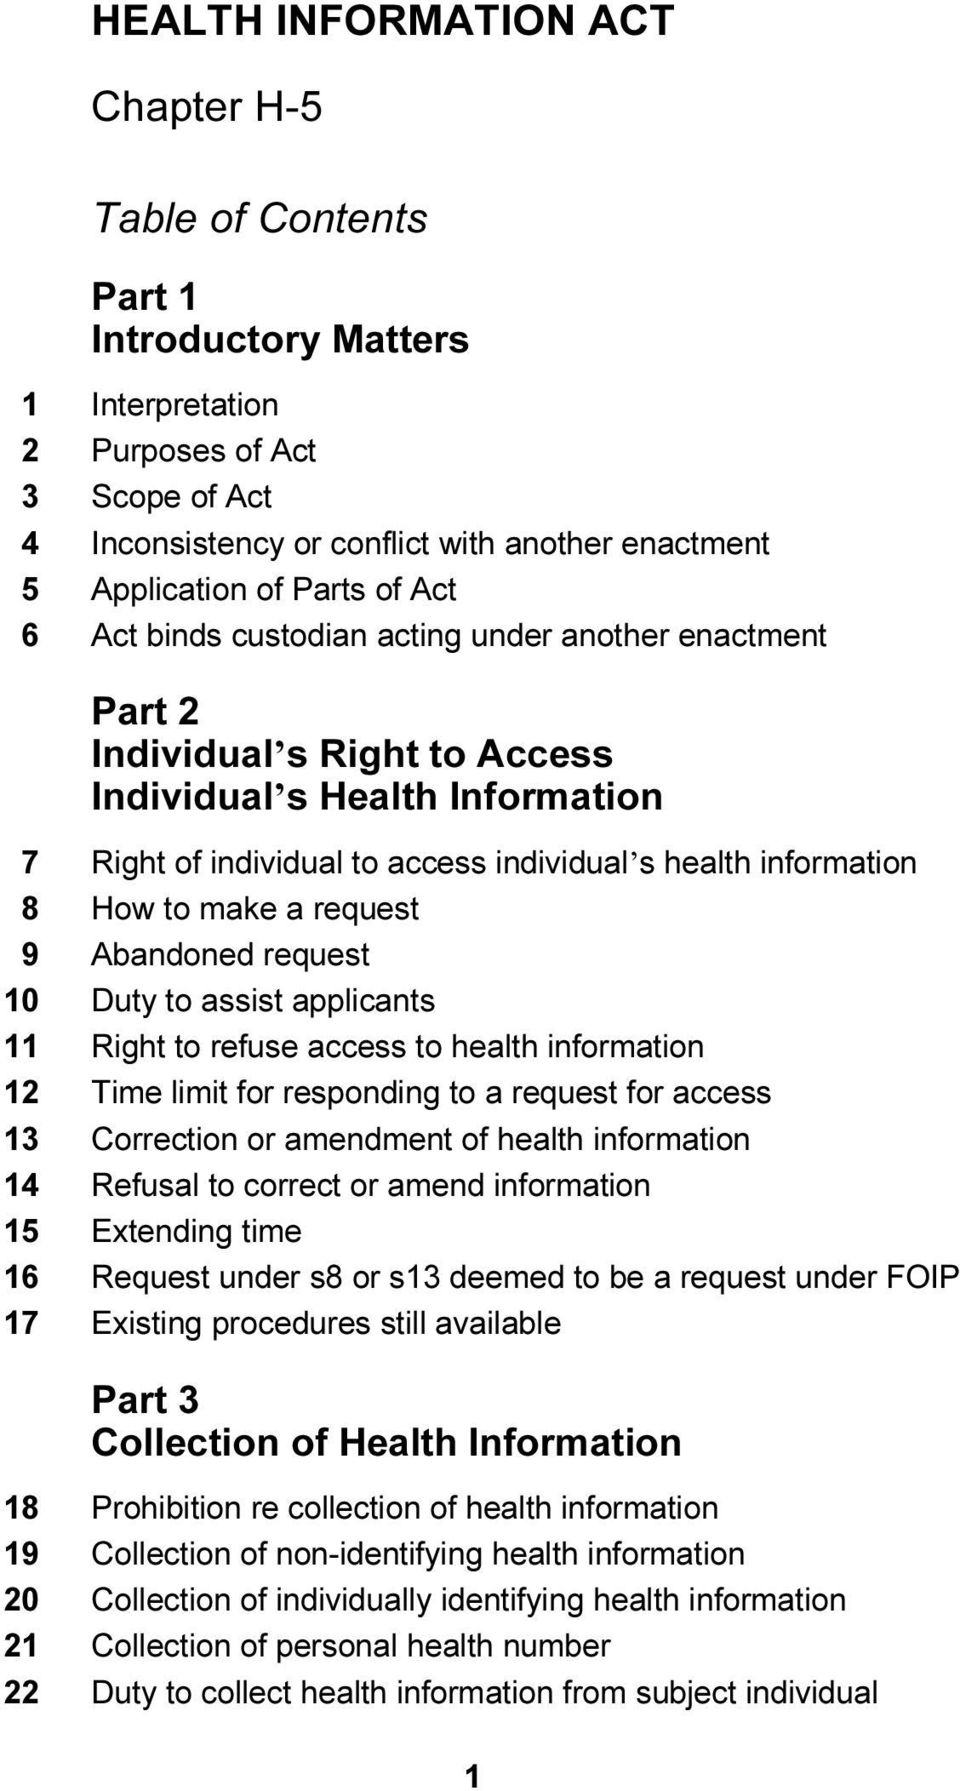 a request 9 Abandoned request 10 Duty to assist applicants 11 Right to refuse access to health information 12 Time limit for responding to a request for access 13 Correction or amendment of health